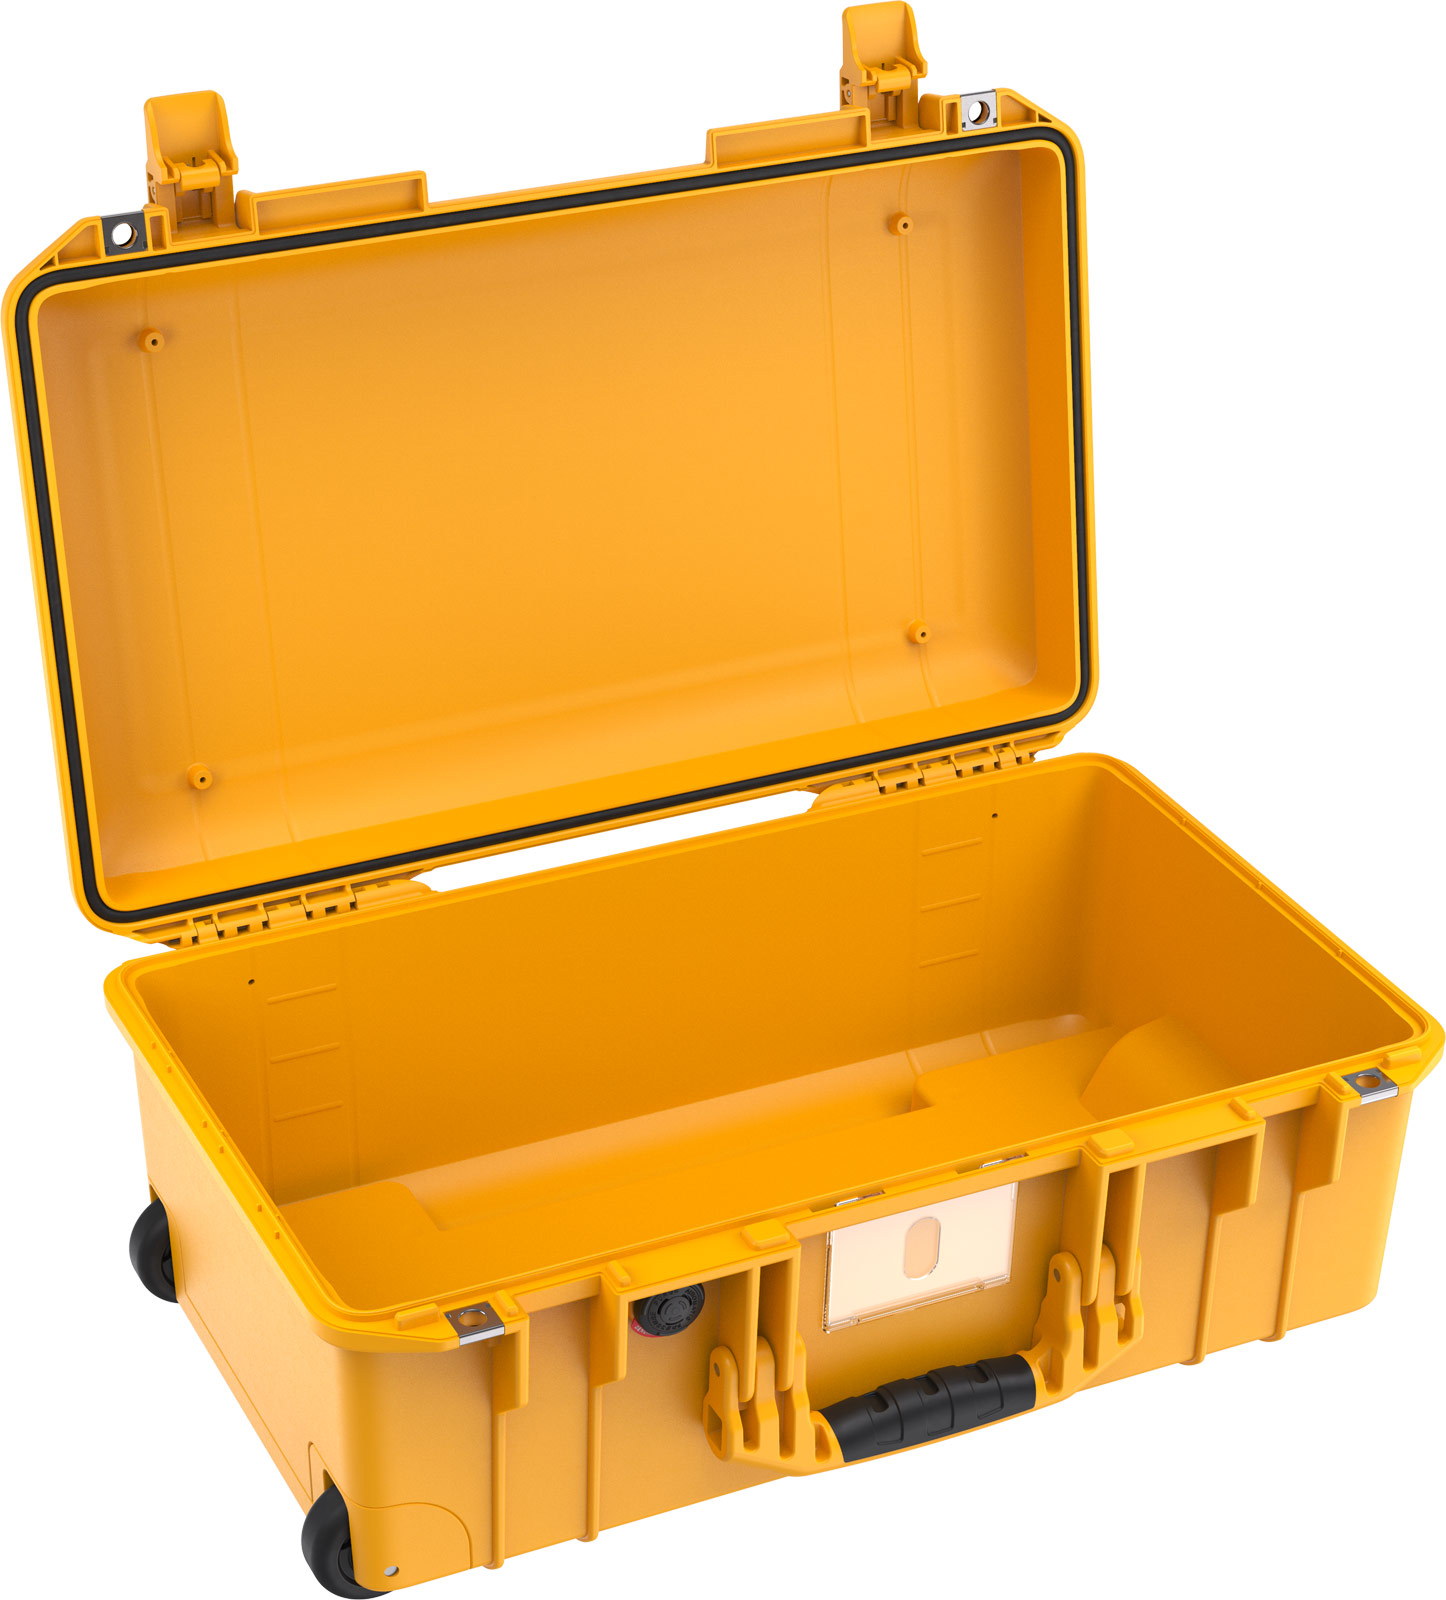 pelican air 1535 yellow mobile lightweight case